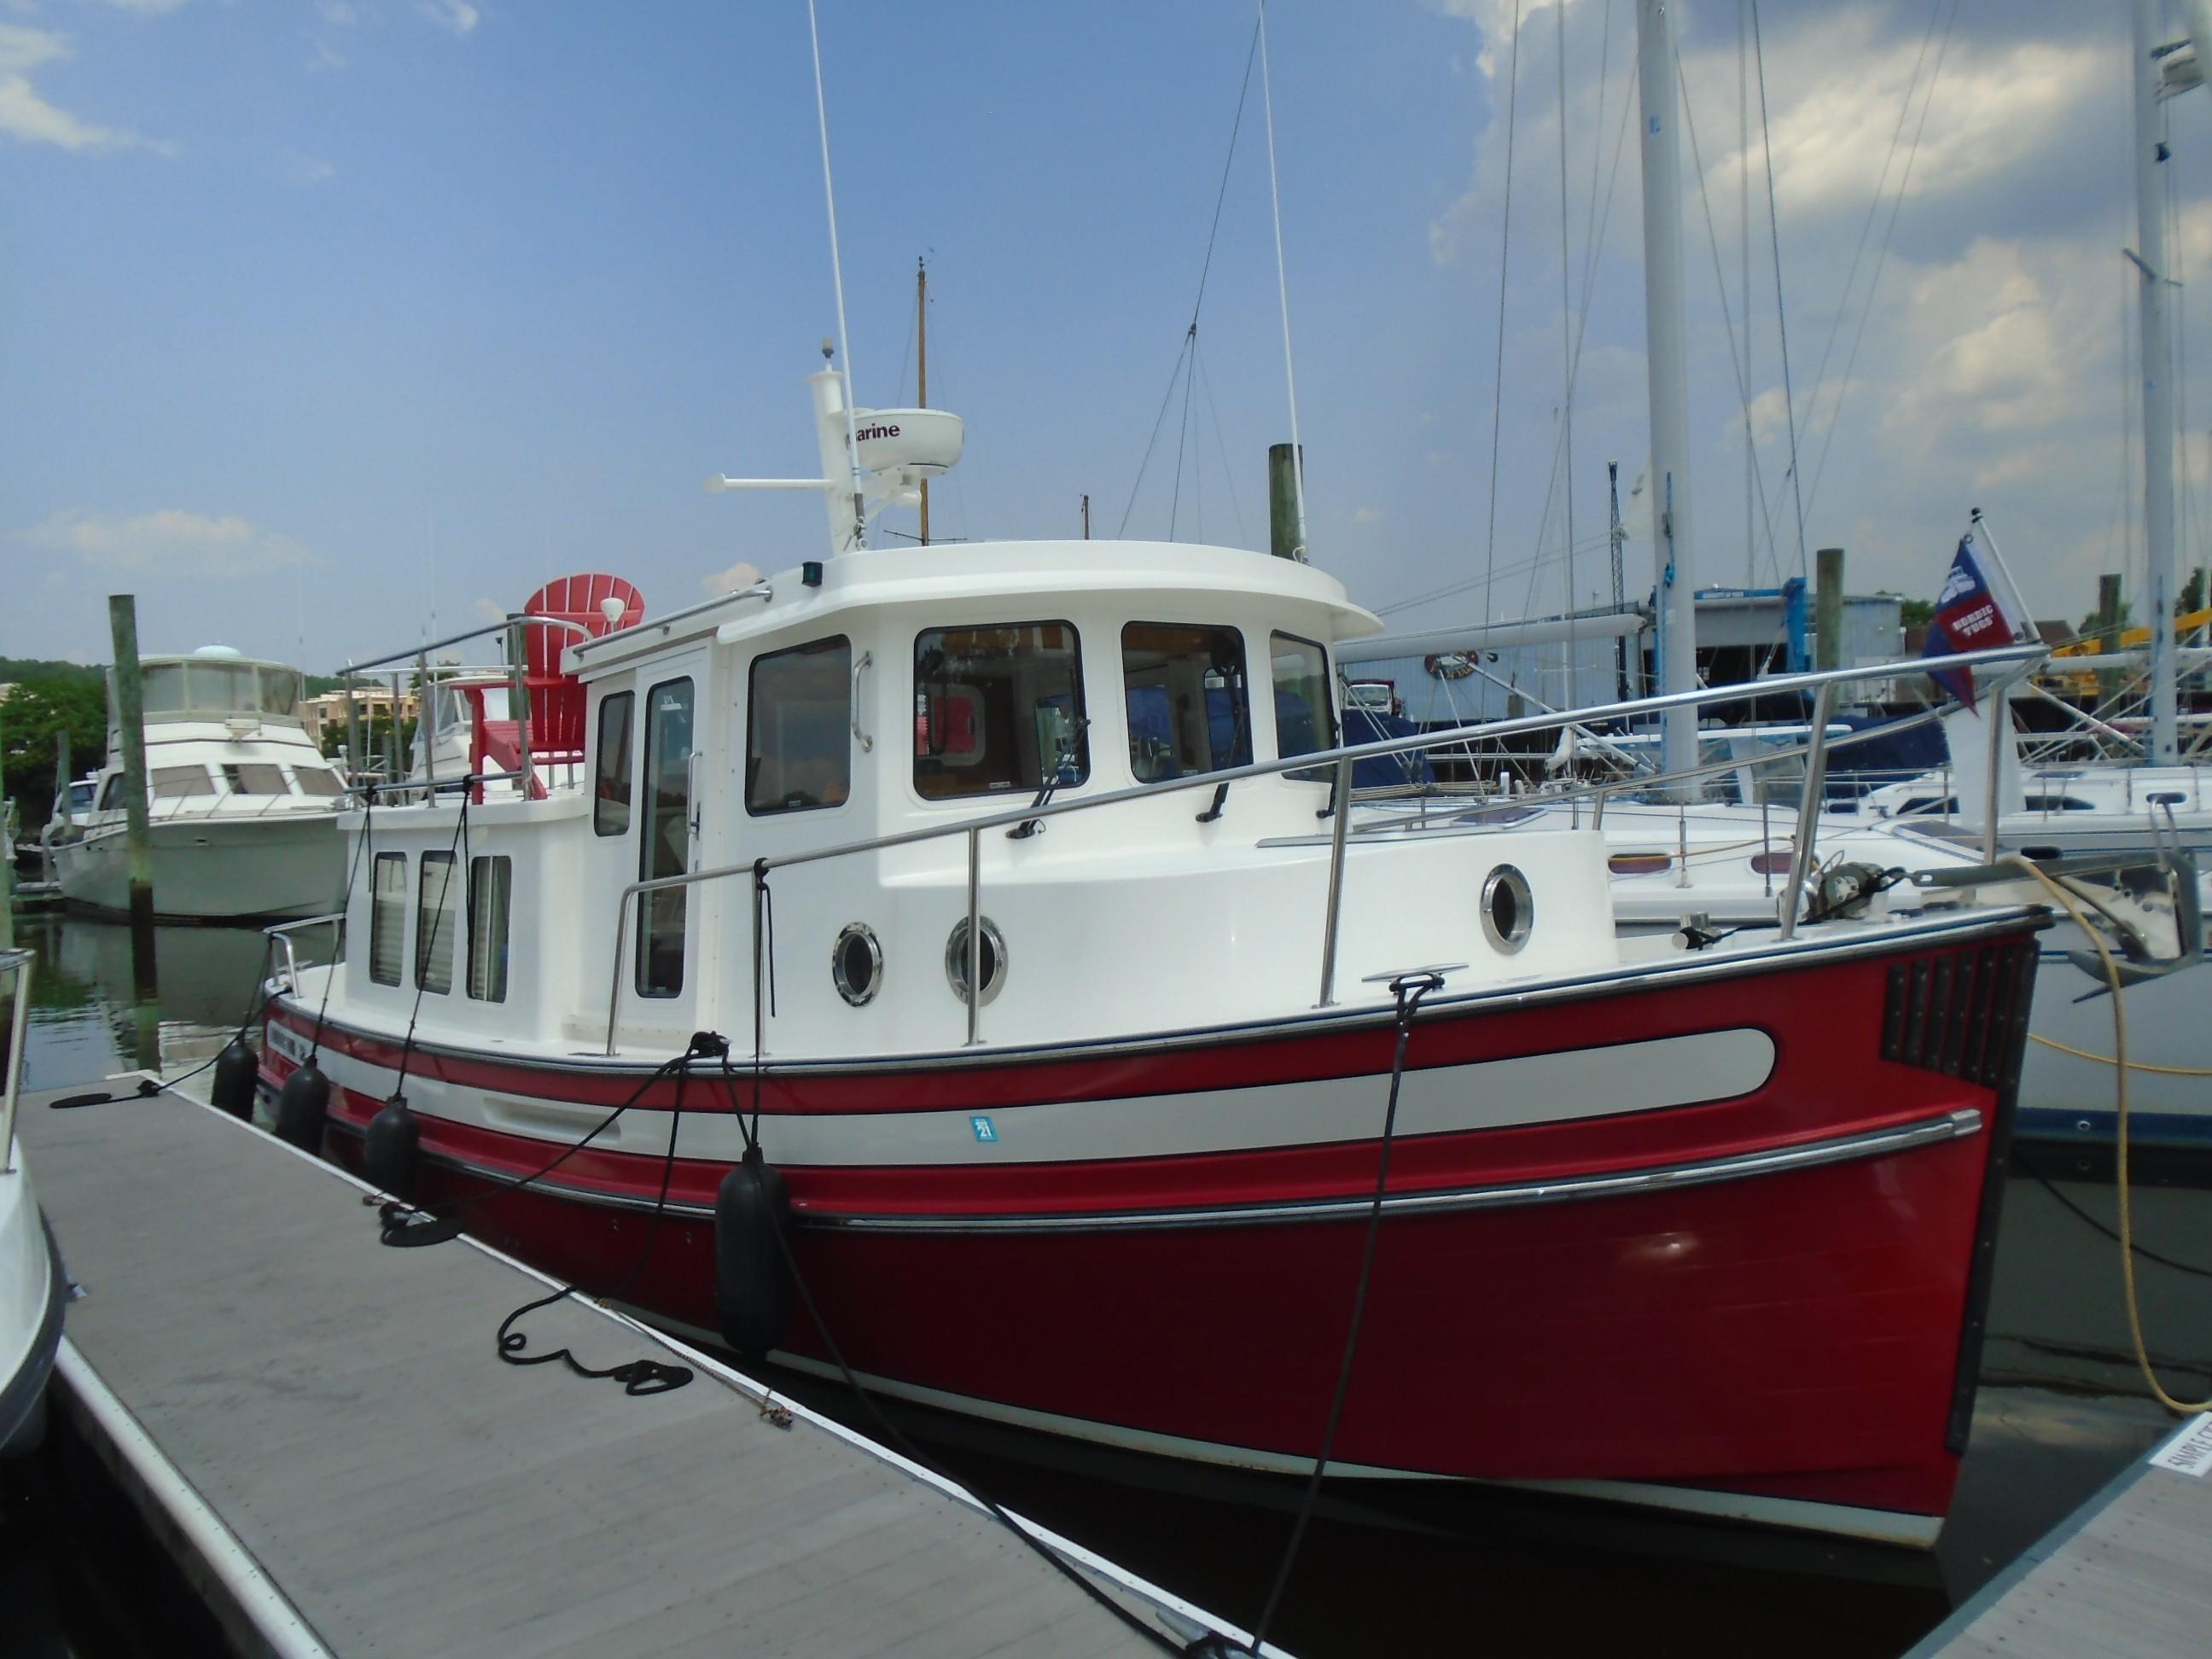 32 Nordic Tugs Simple Gifts 2009 Glen Cove   Denison Yacht Sales